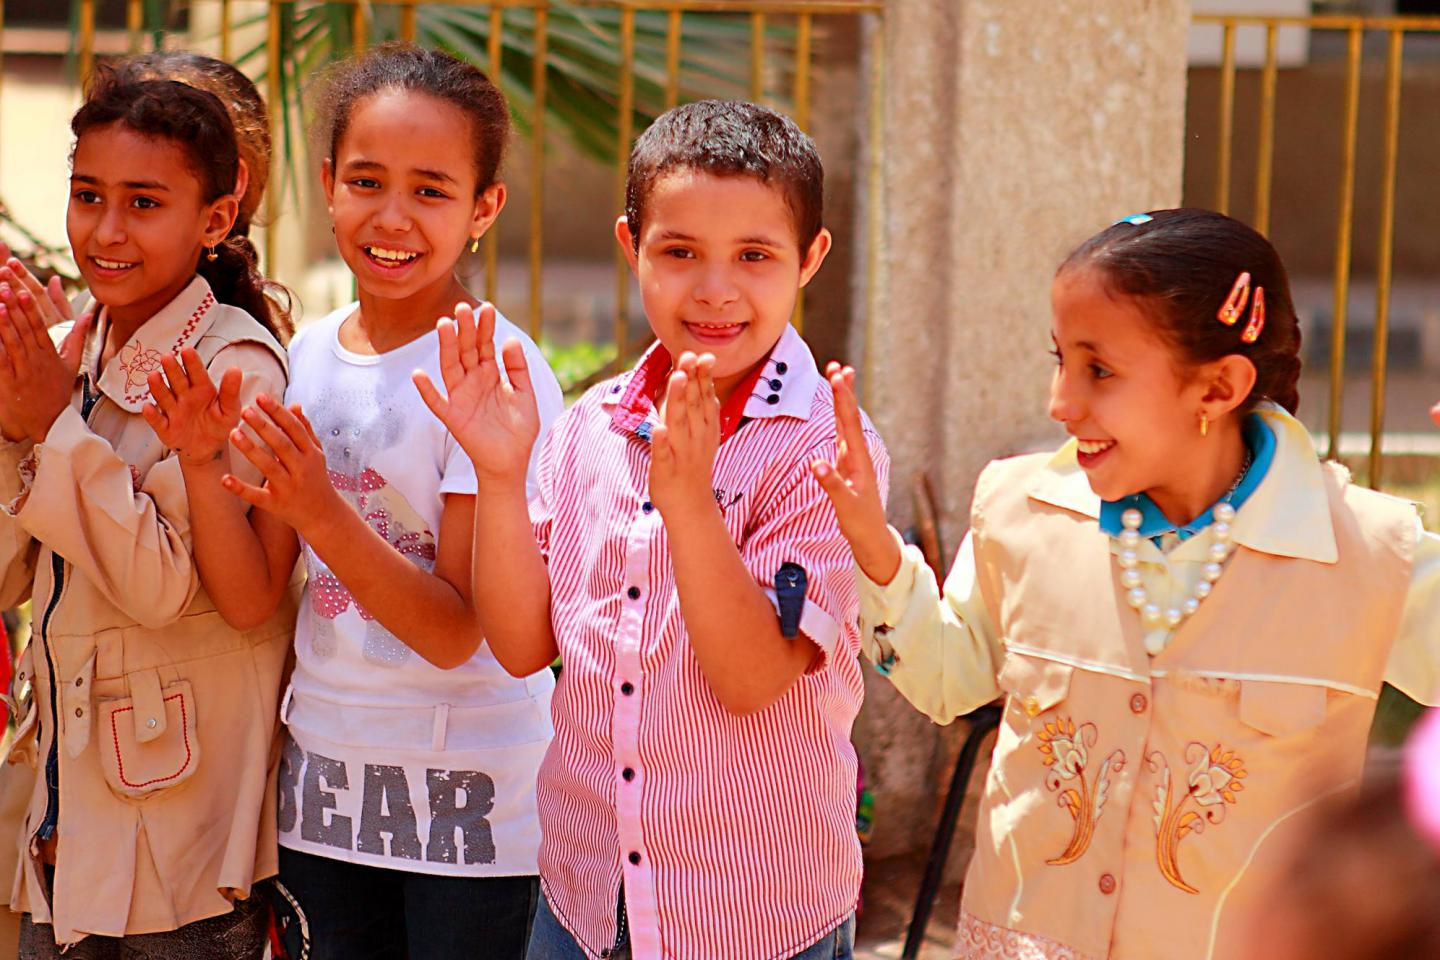 Children in Egypt